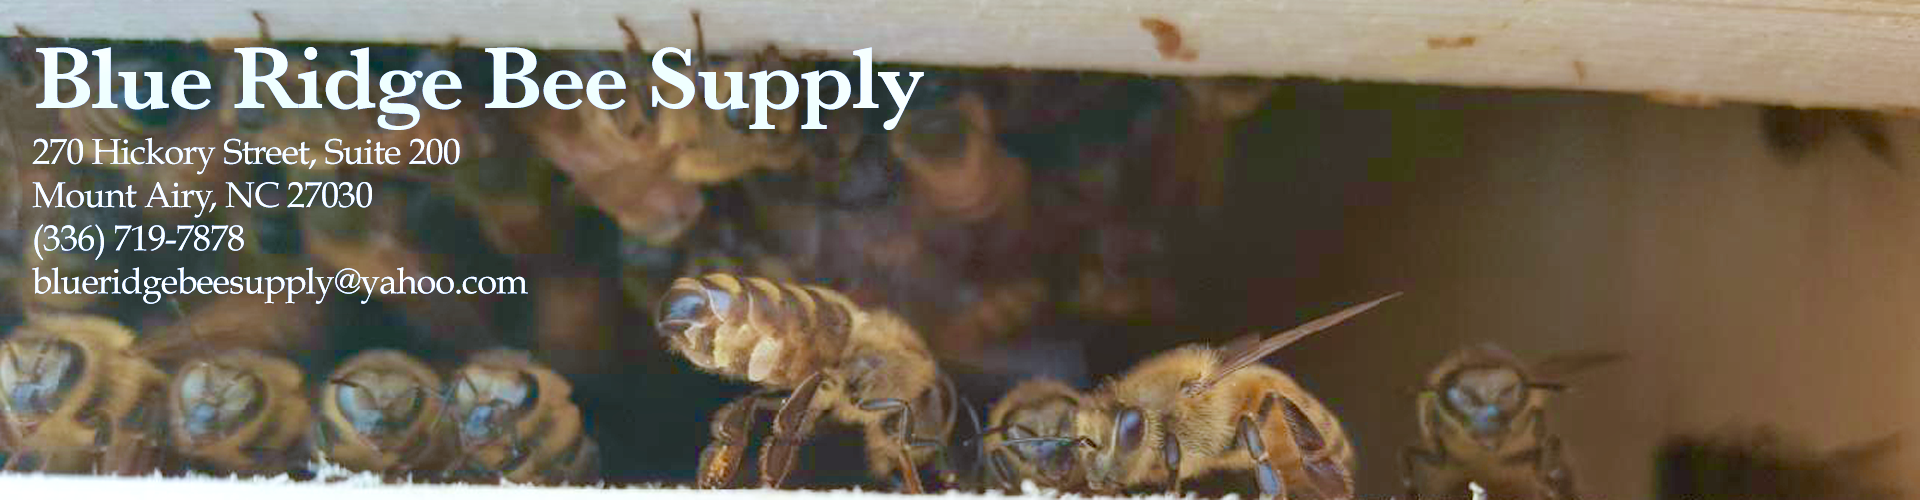 Blue Ridge Bee Supply